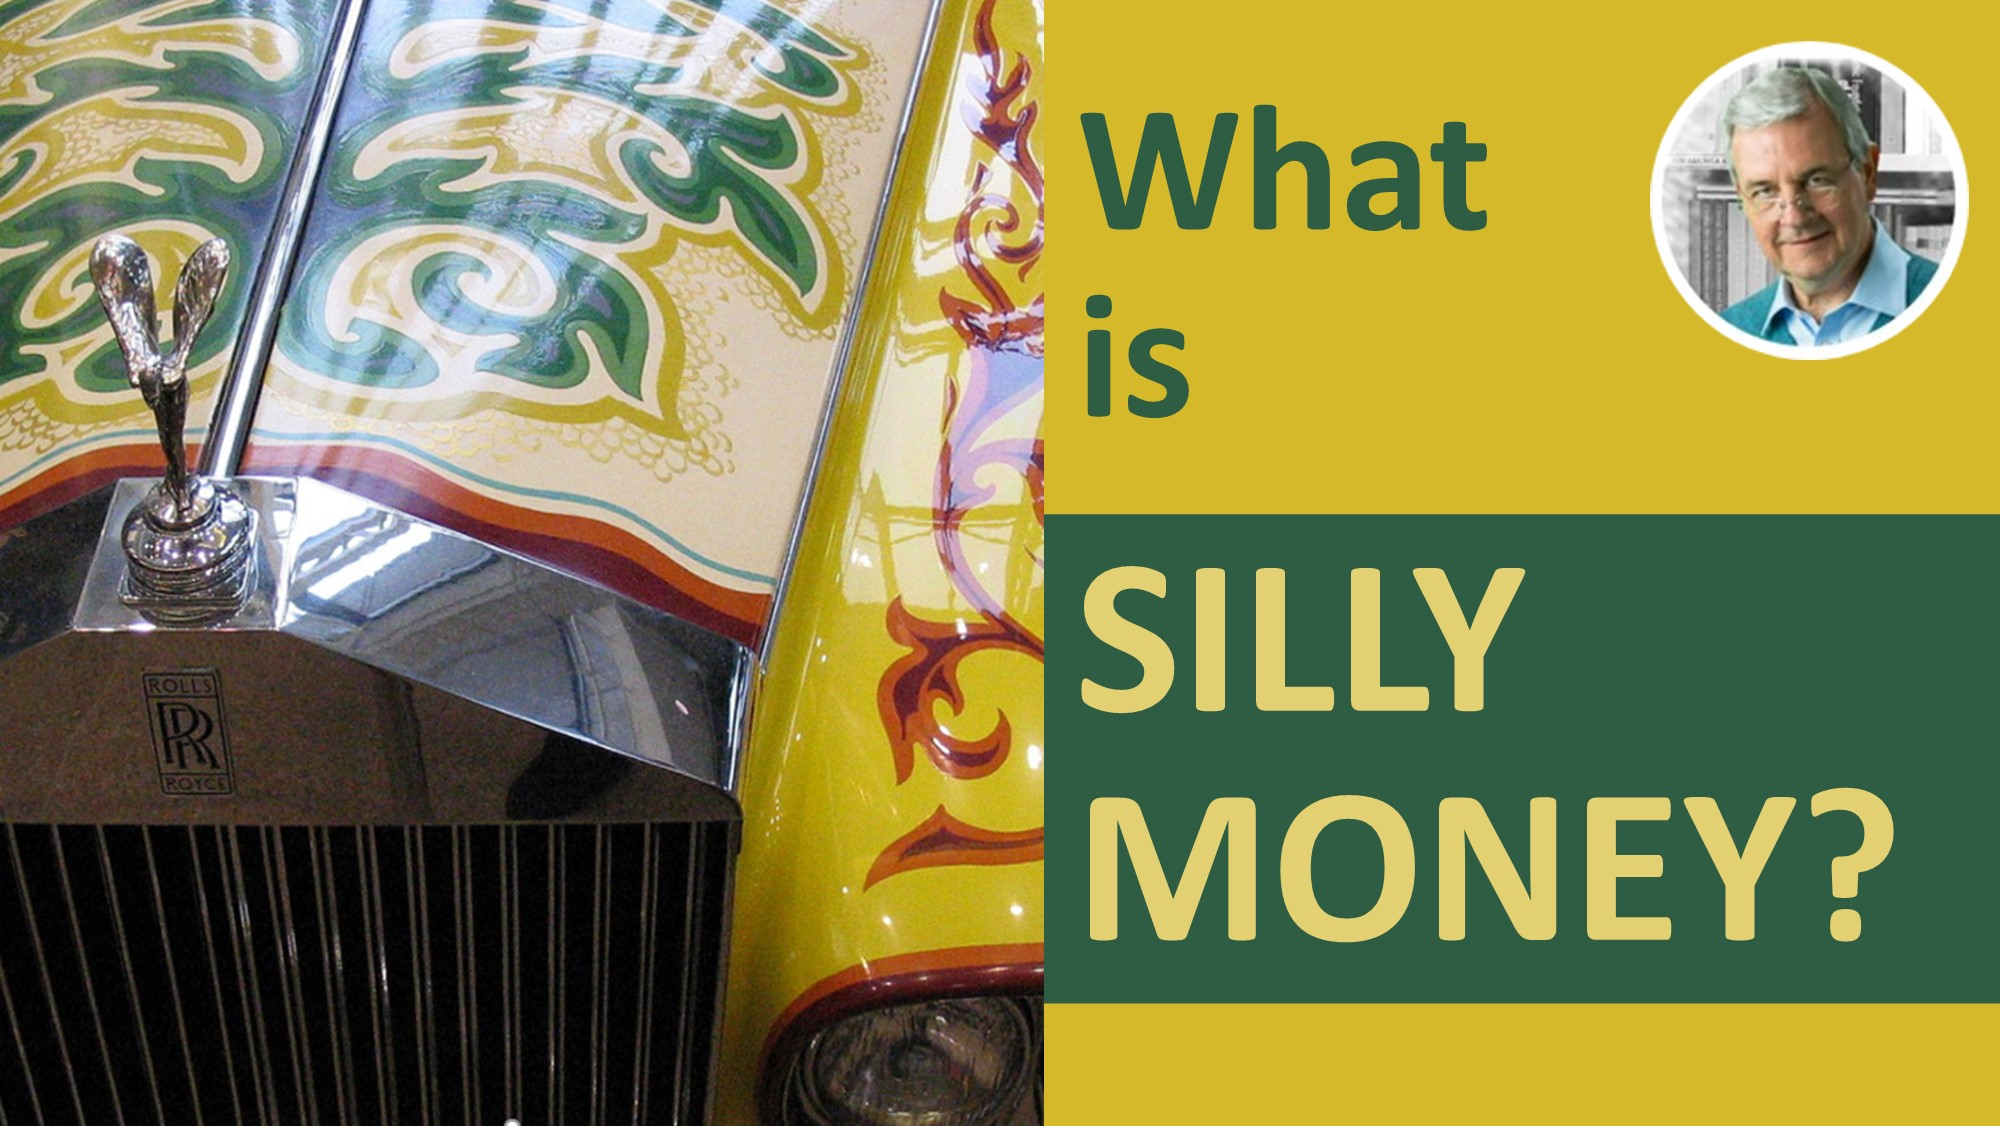 definition of silly money